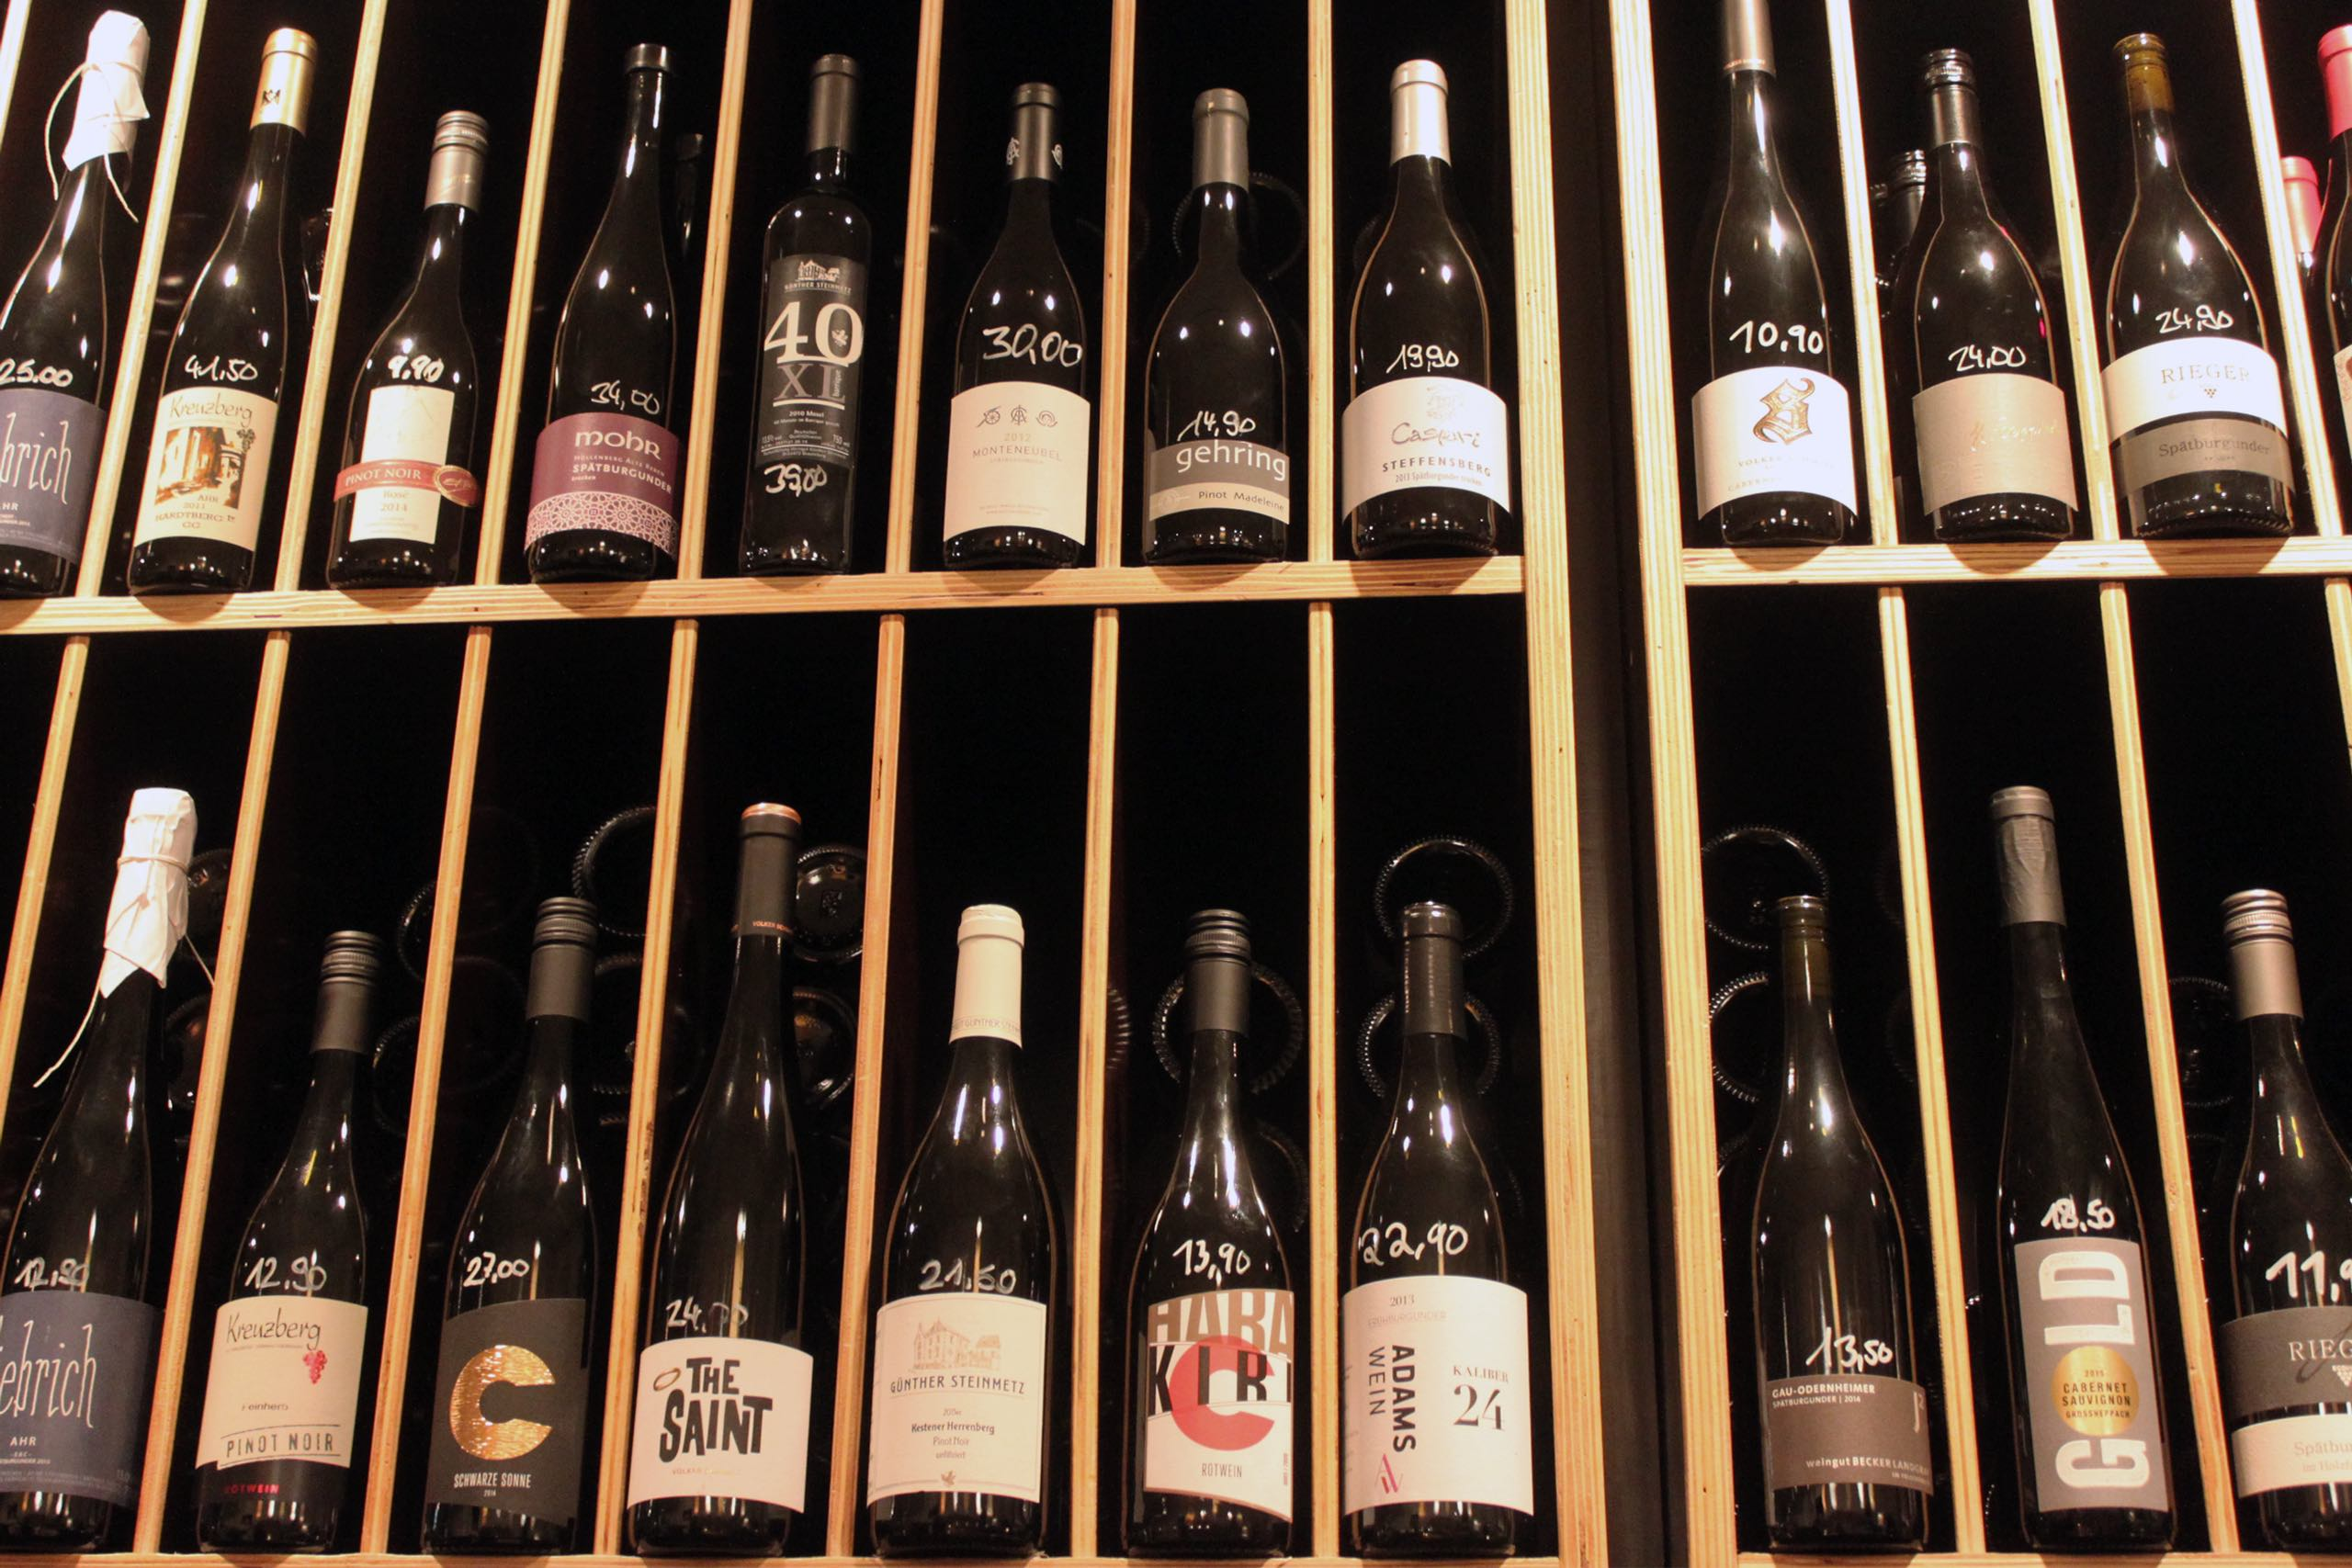 Not only Riesling Berlin